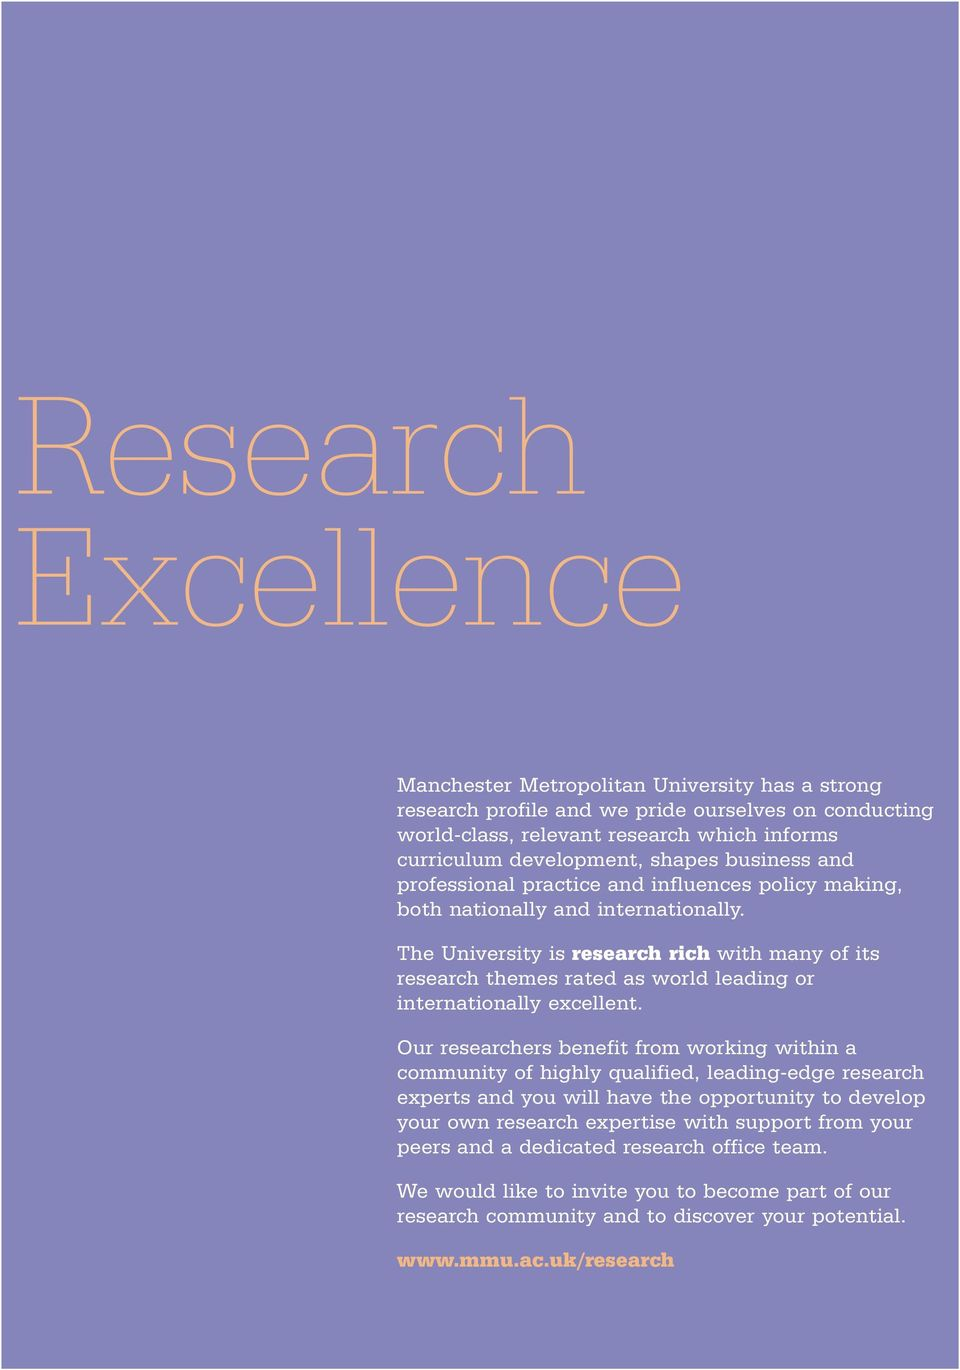 The University is research rich with many of its research themes rated as world leading or internationally excellent.